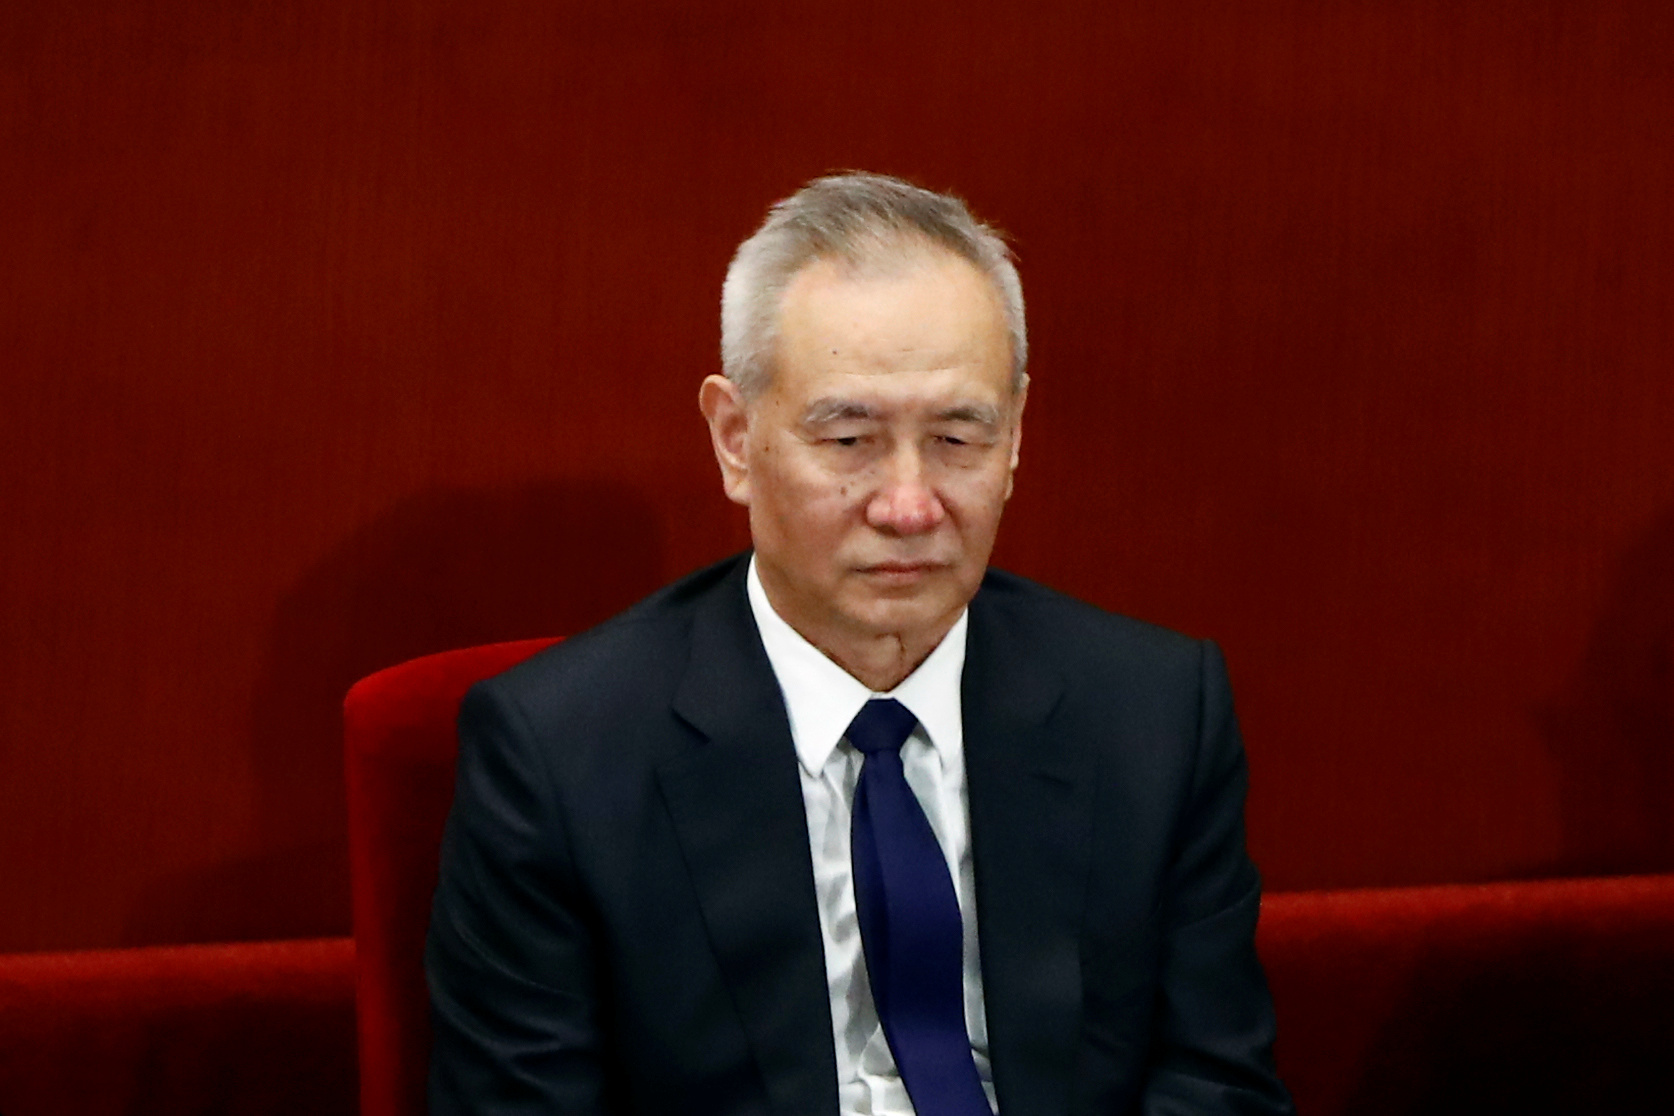 Chinese Vice Premier Liu He attends the closing session of the Chinese People's Political Consultative Conference (CPPCC) at the Great Hall of the People in Beijing, China May 27, 2020.  REUTERS/Thomas Peter/Pool